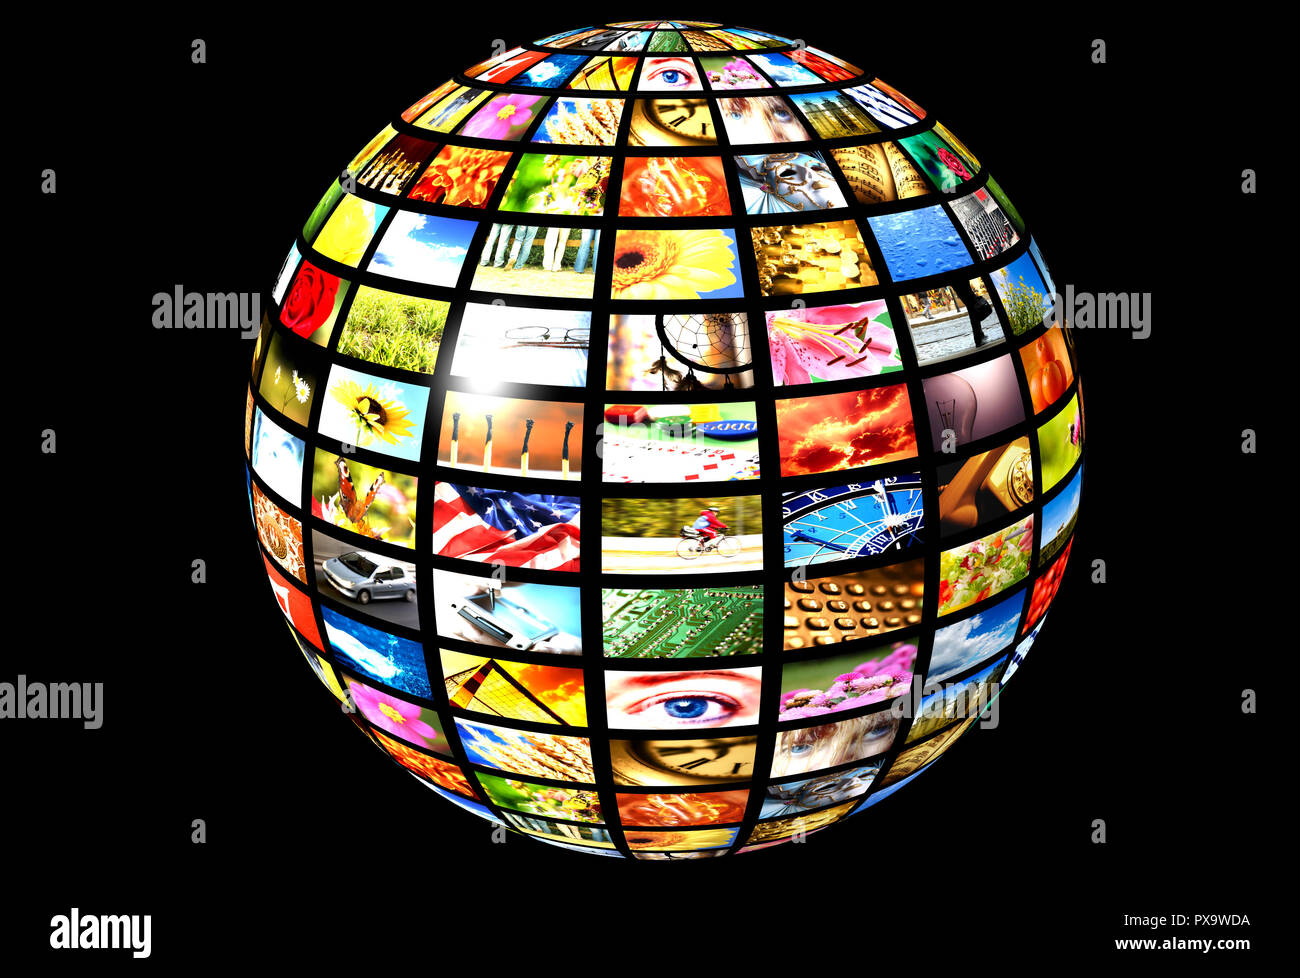 sphere with many screens, digital television and internet broadcasting - Stock Image